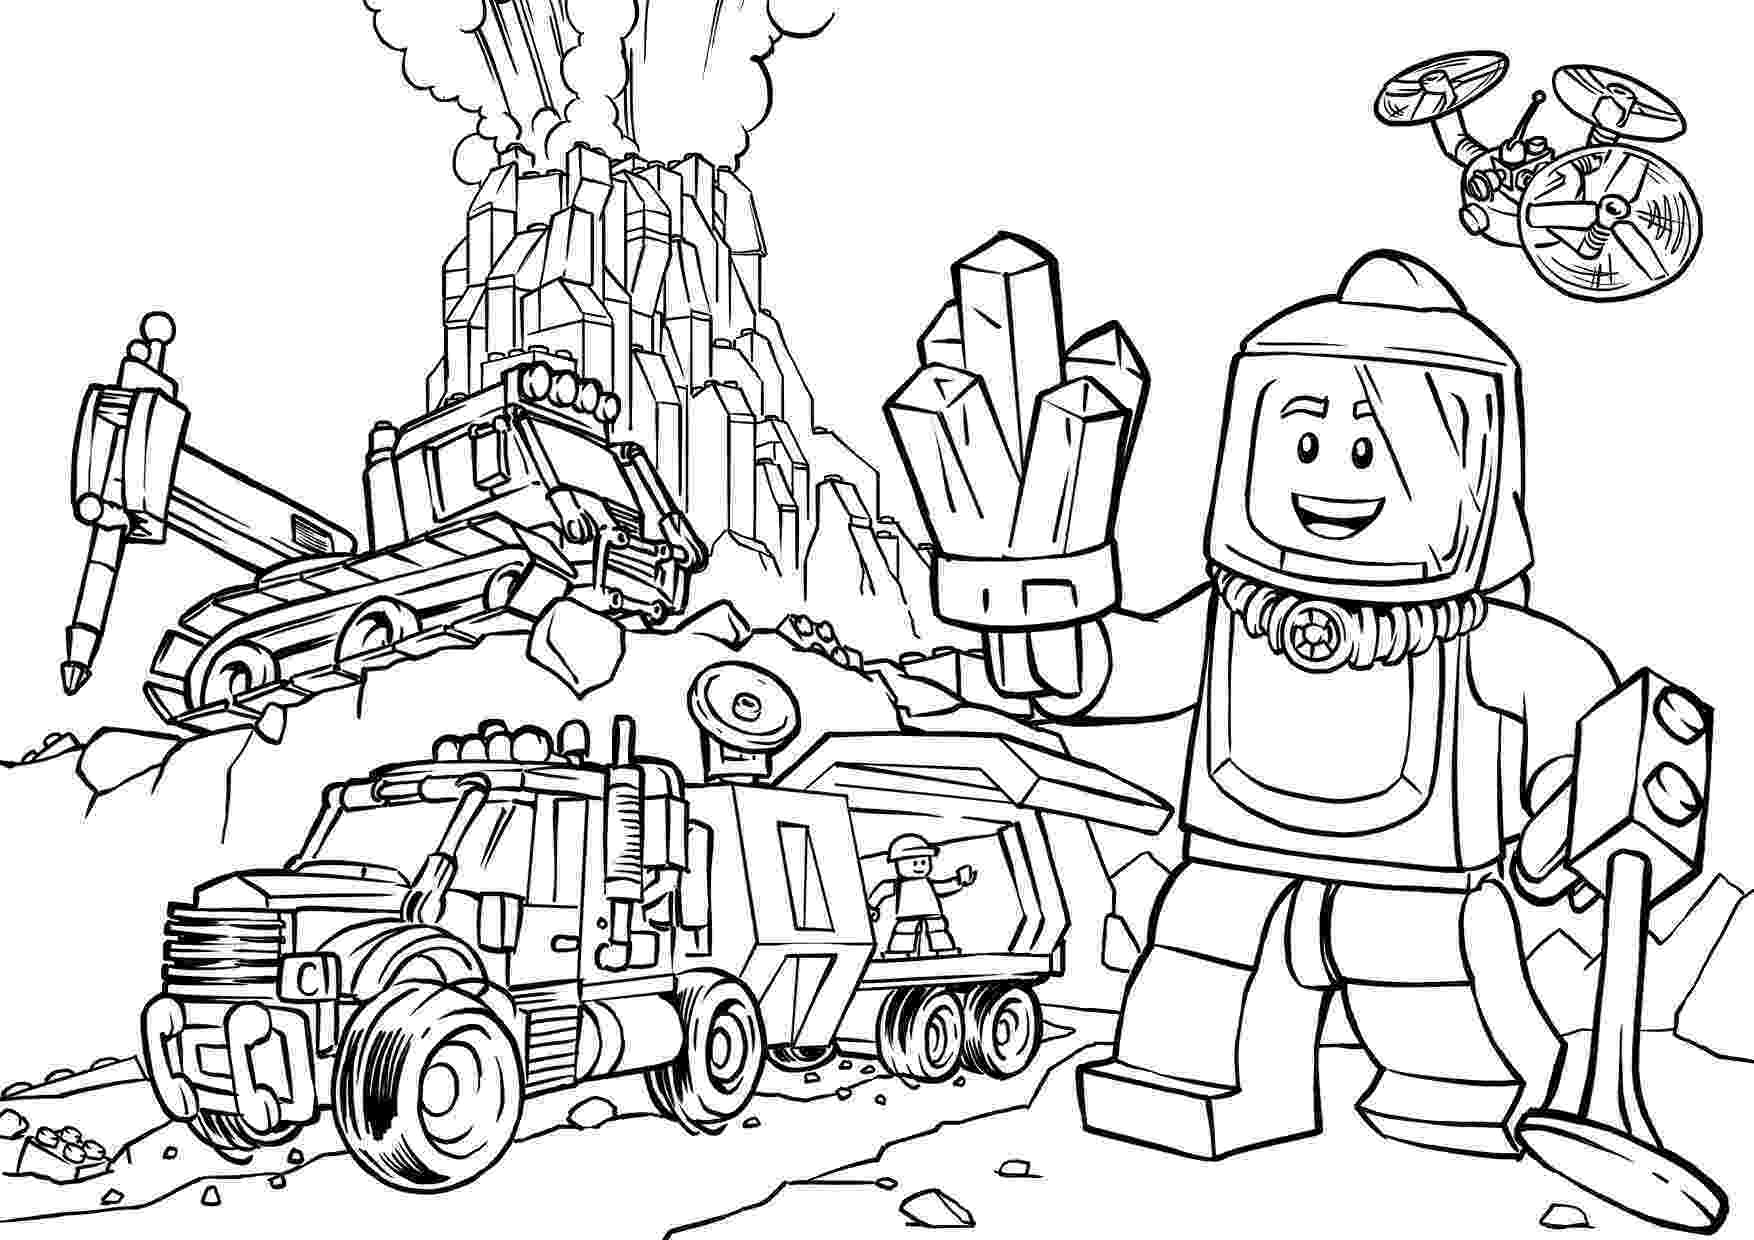 coloring pages of legos lego star wars coloring pages to download and print for free pages legos of coloring